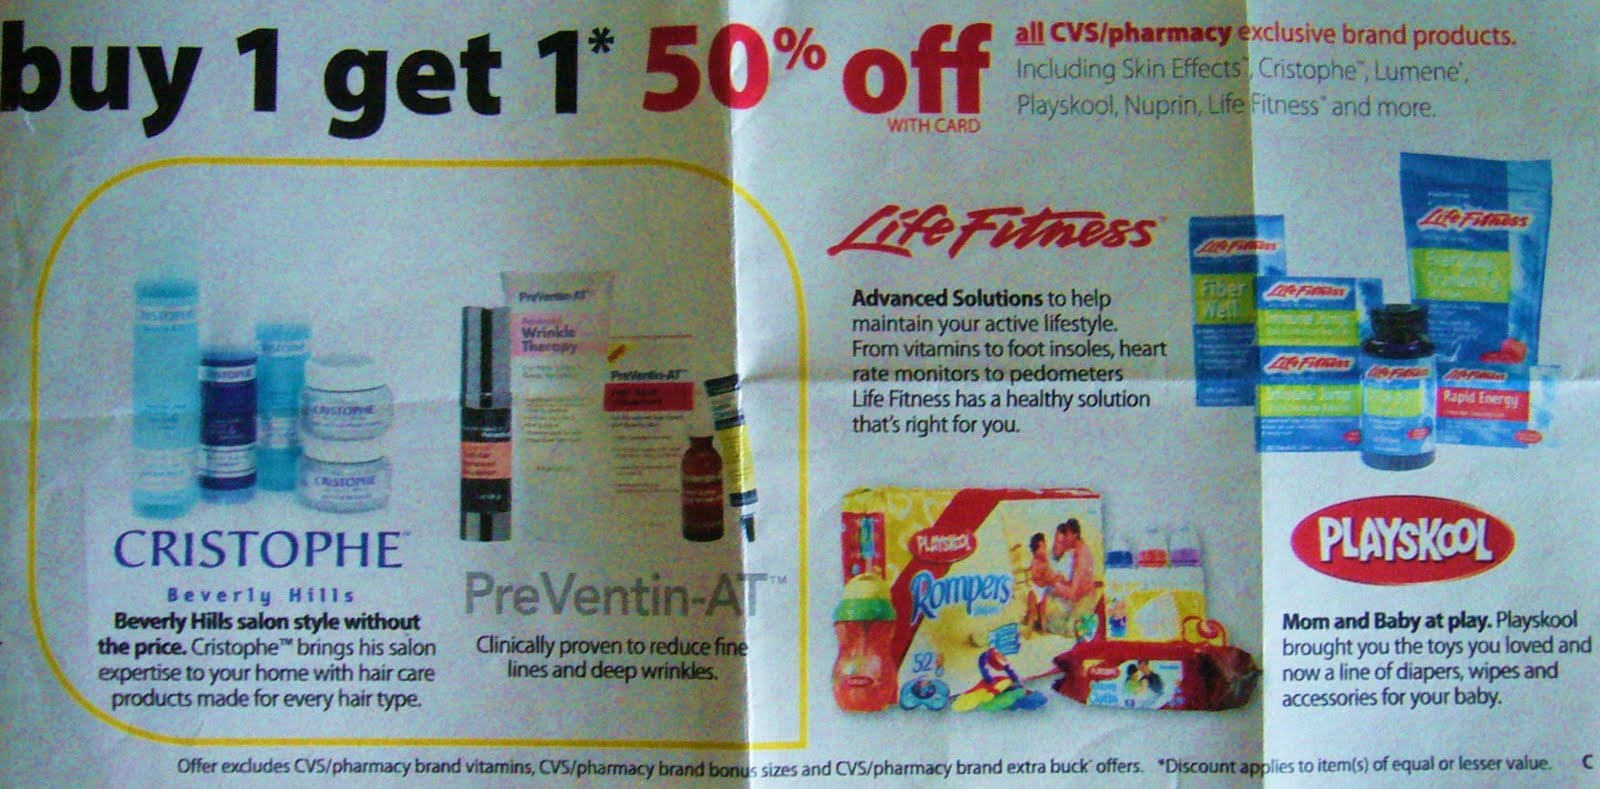 simply cvs  cvs brand products  what all is included